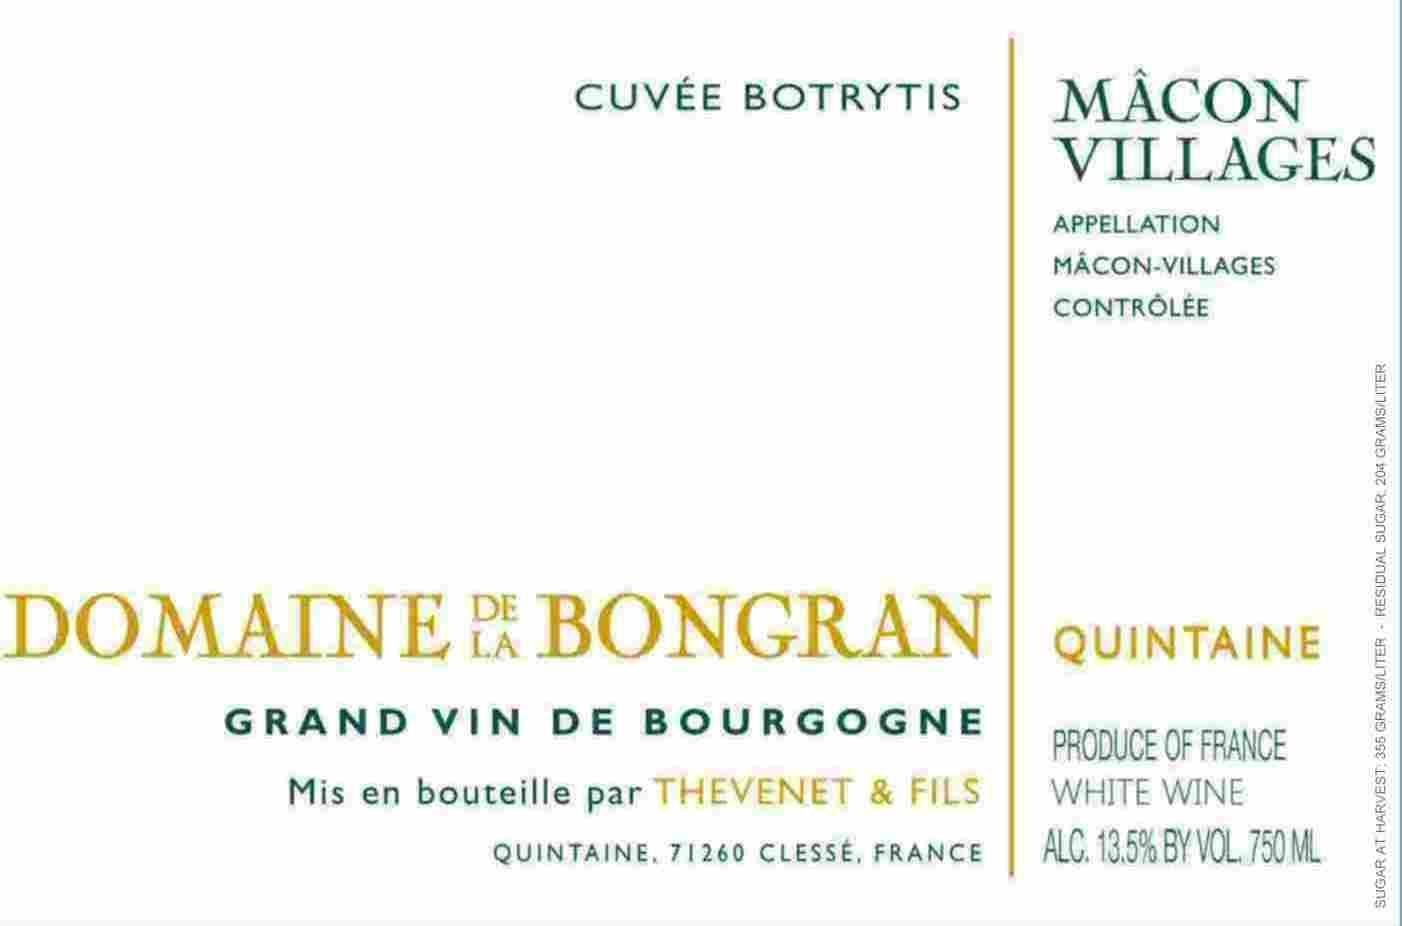 Domaine de la Bongran Macon Villages Cuvee Botrytis 2006 Front Label